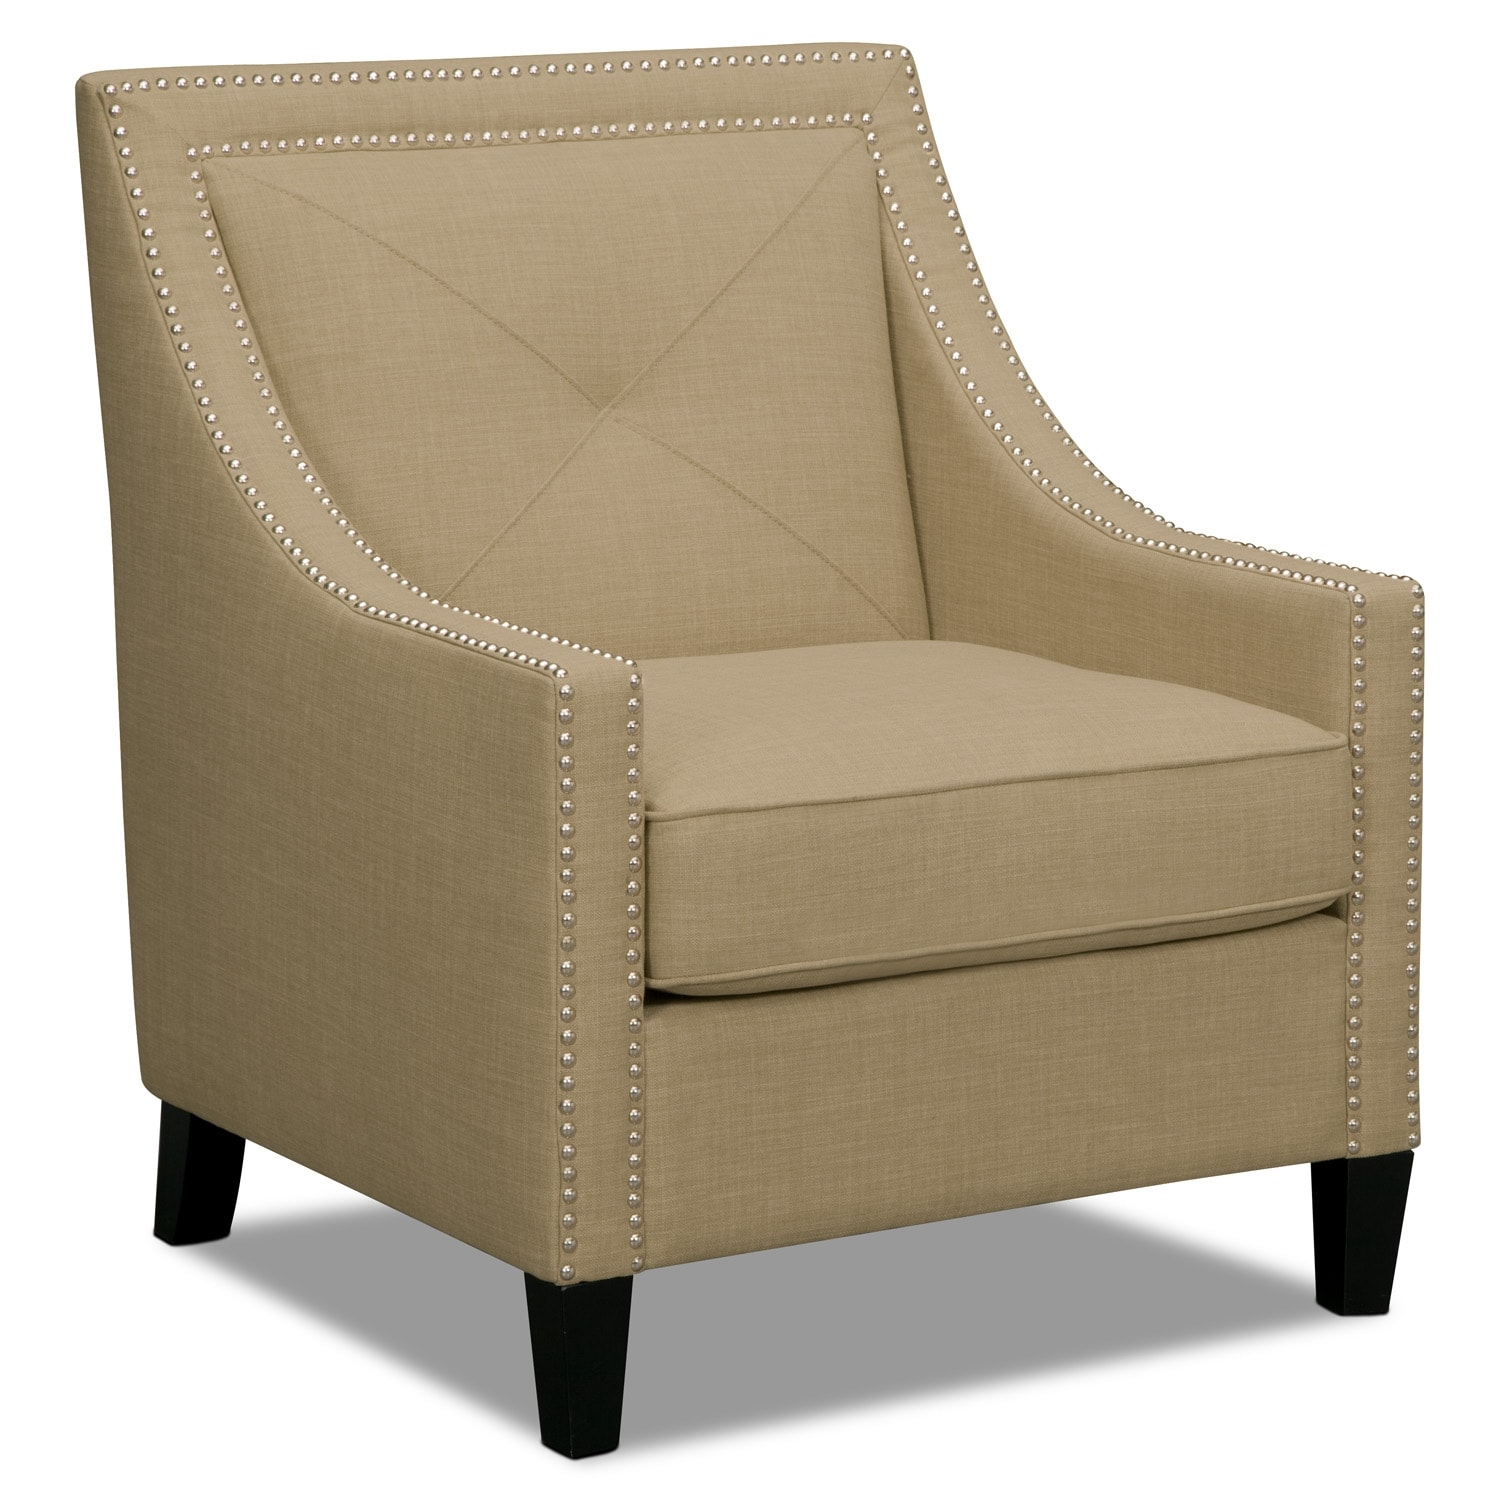 Living Room Furniture - Cabaret Accent Chair - Beige